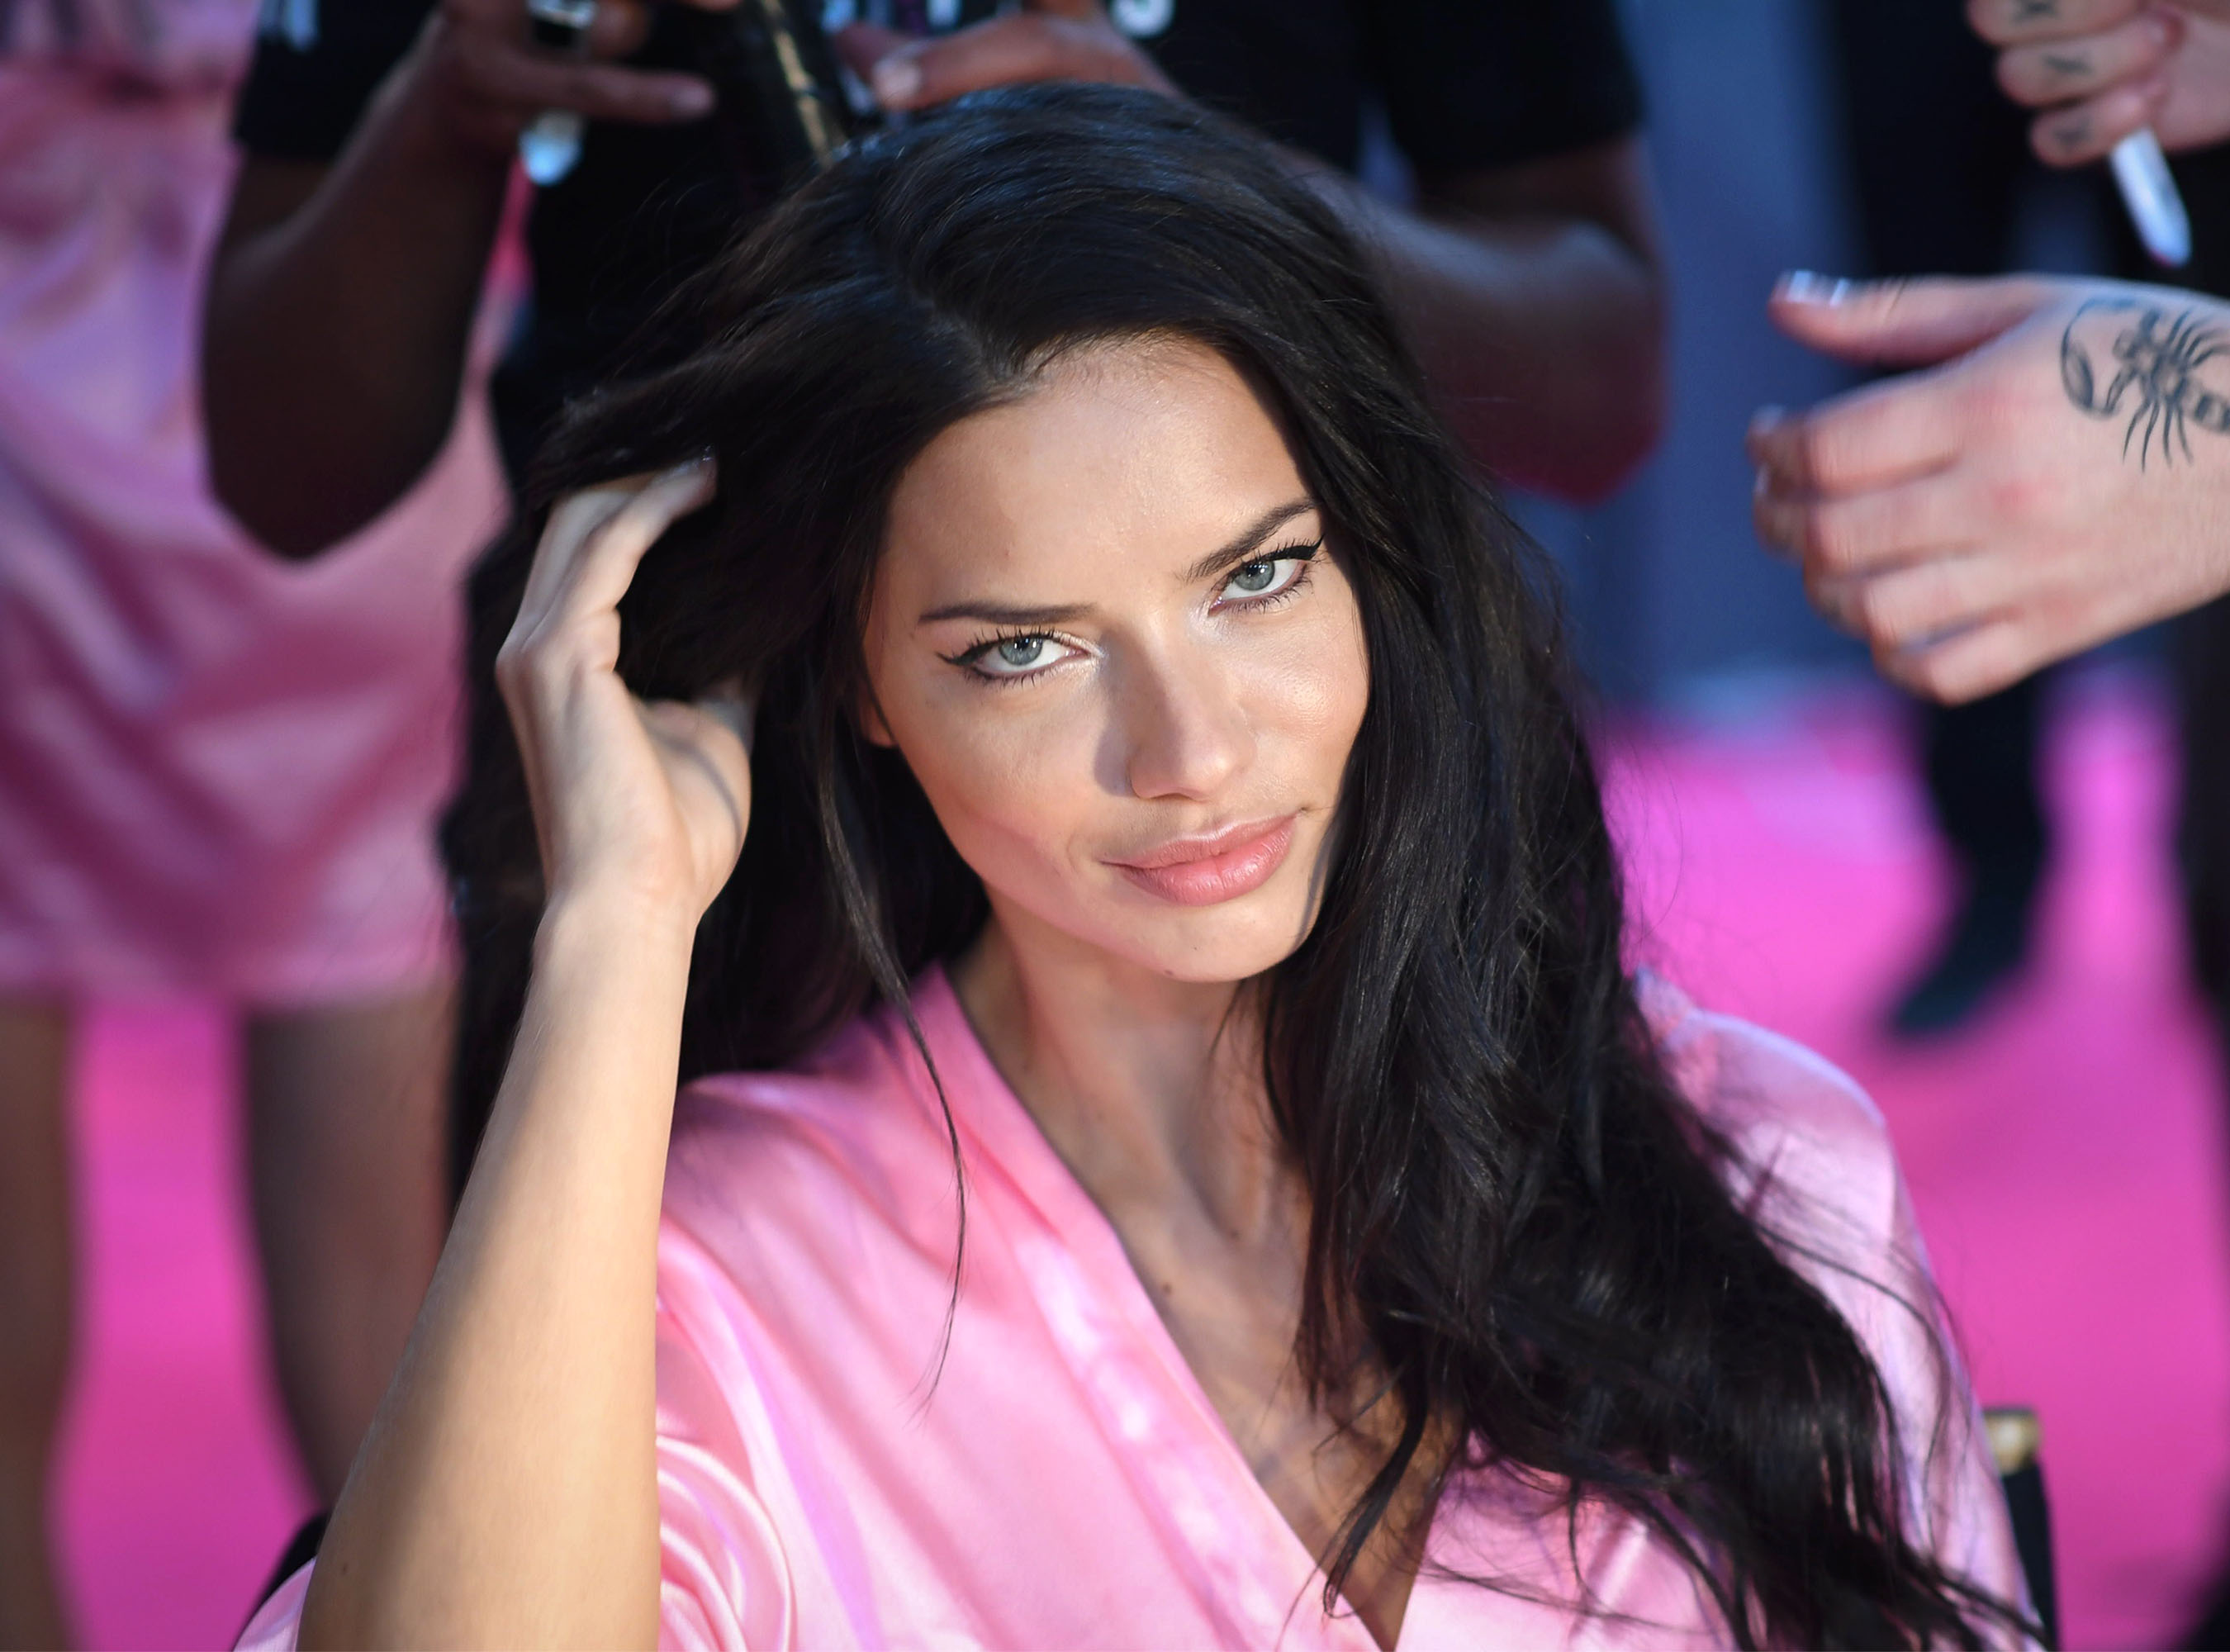 Adriana Lima won't take her clothes off anymore for 'an empty cause'